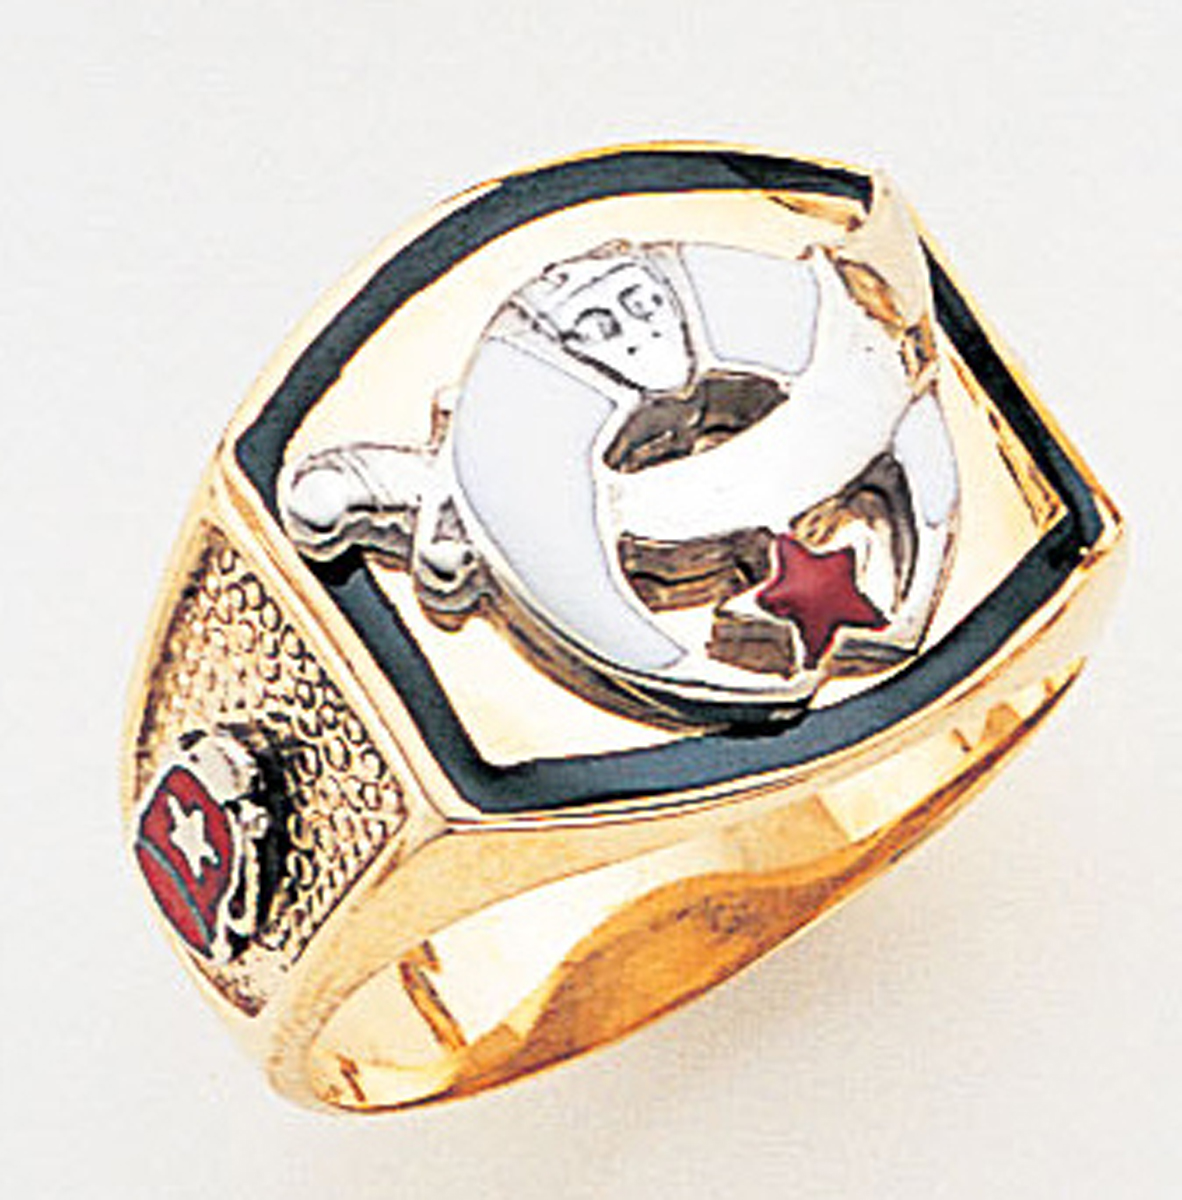 Masonic Shrine Ring Macoy Publishing Masonic Supply 3262